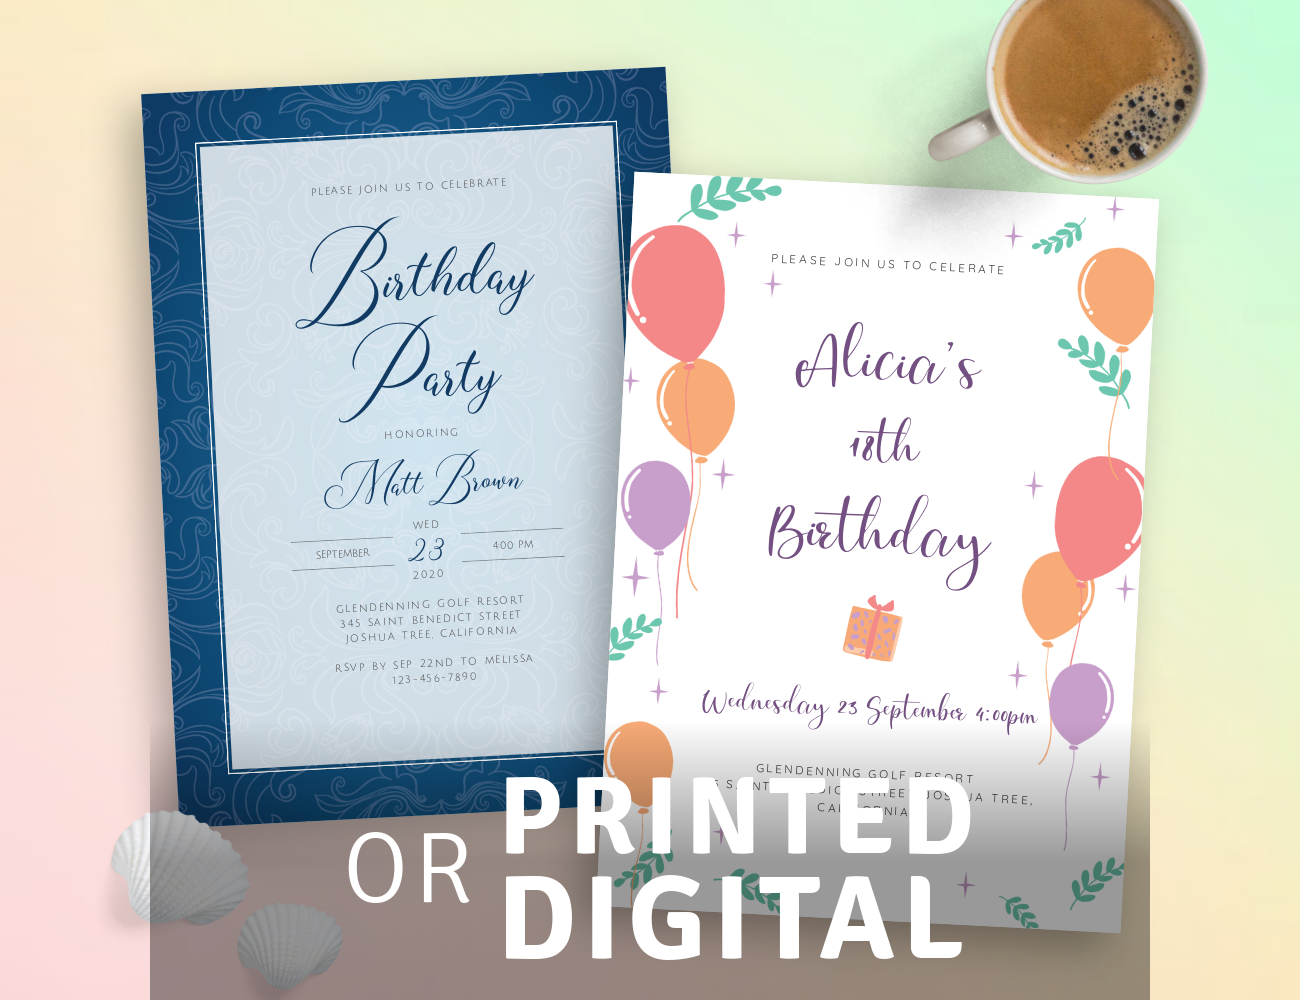 Printed or Digital Birthday Invitation Templates